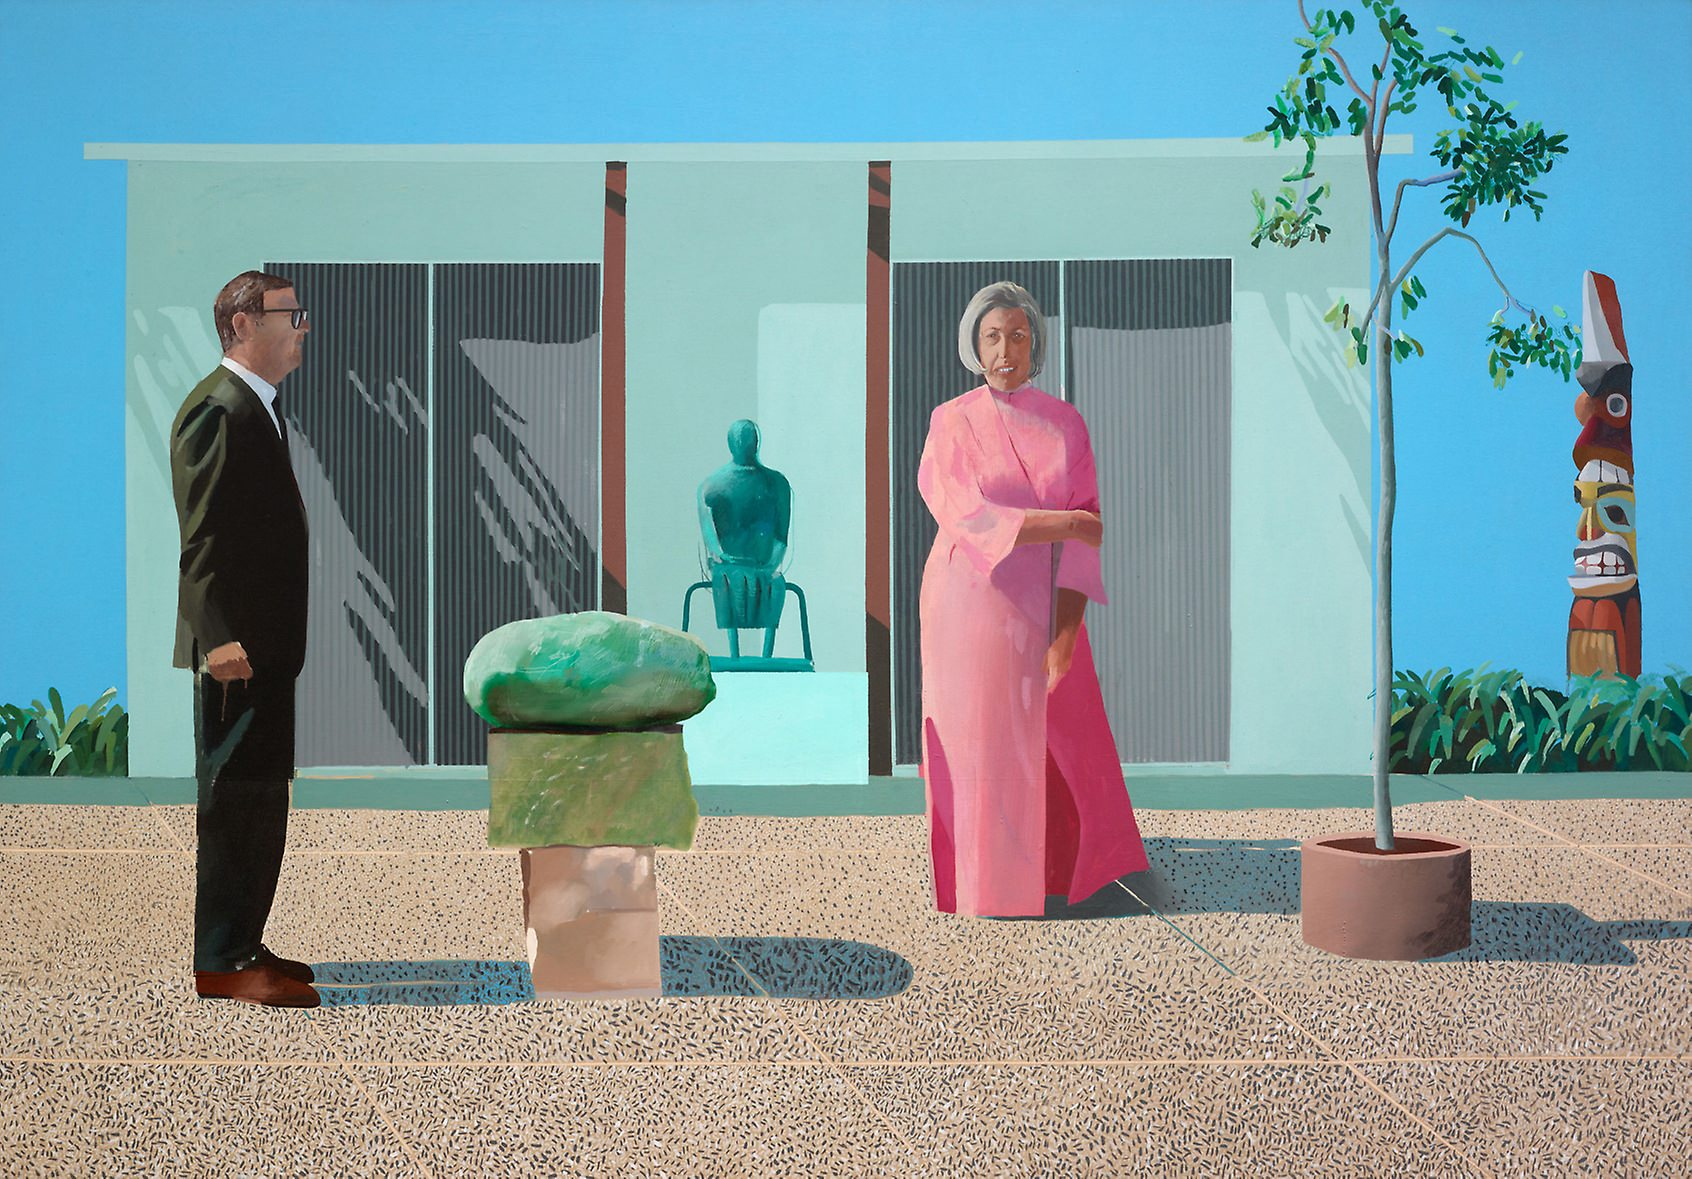 American Collectors (Frad and Marcia Weisman), David Hockney